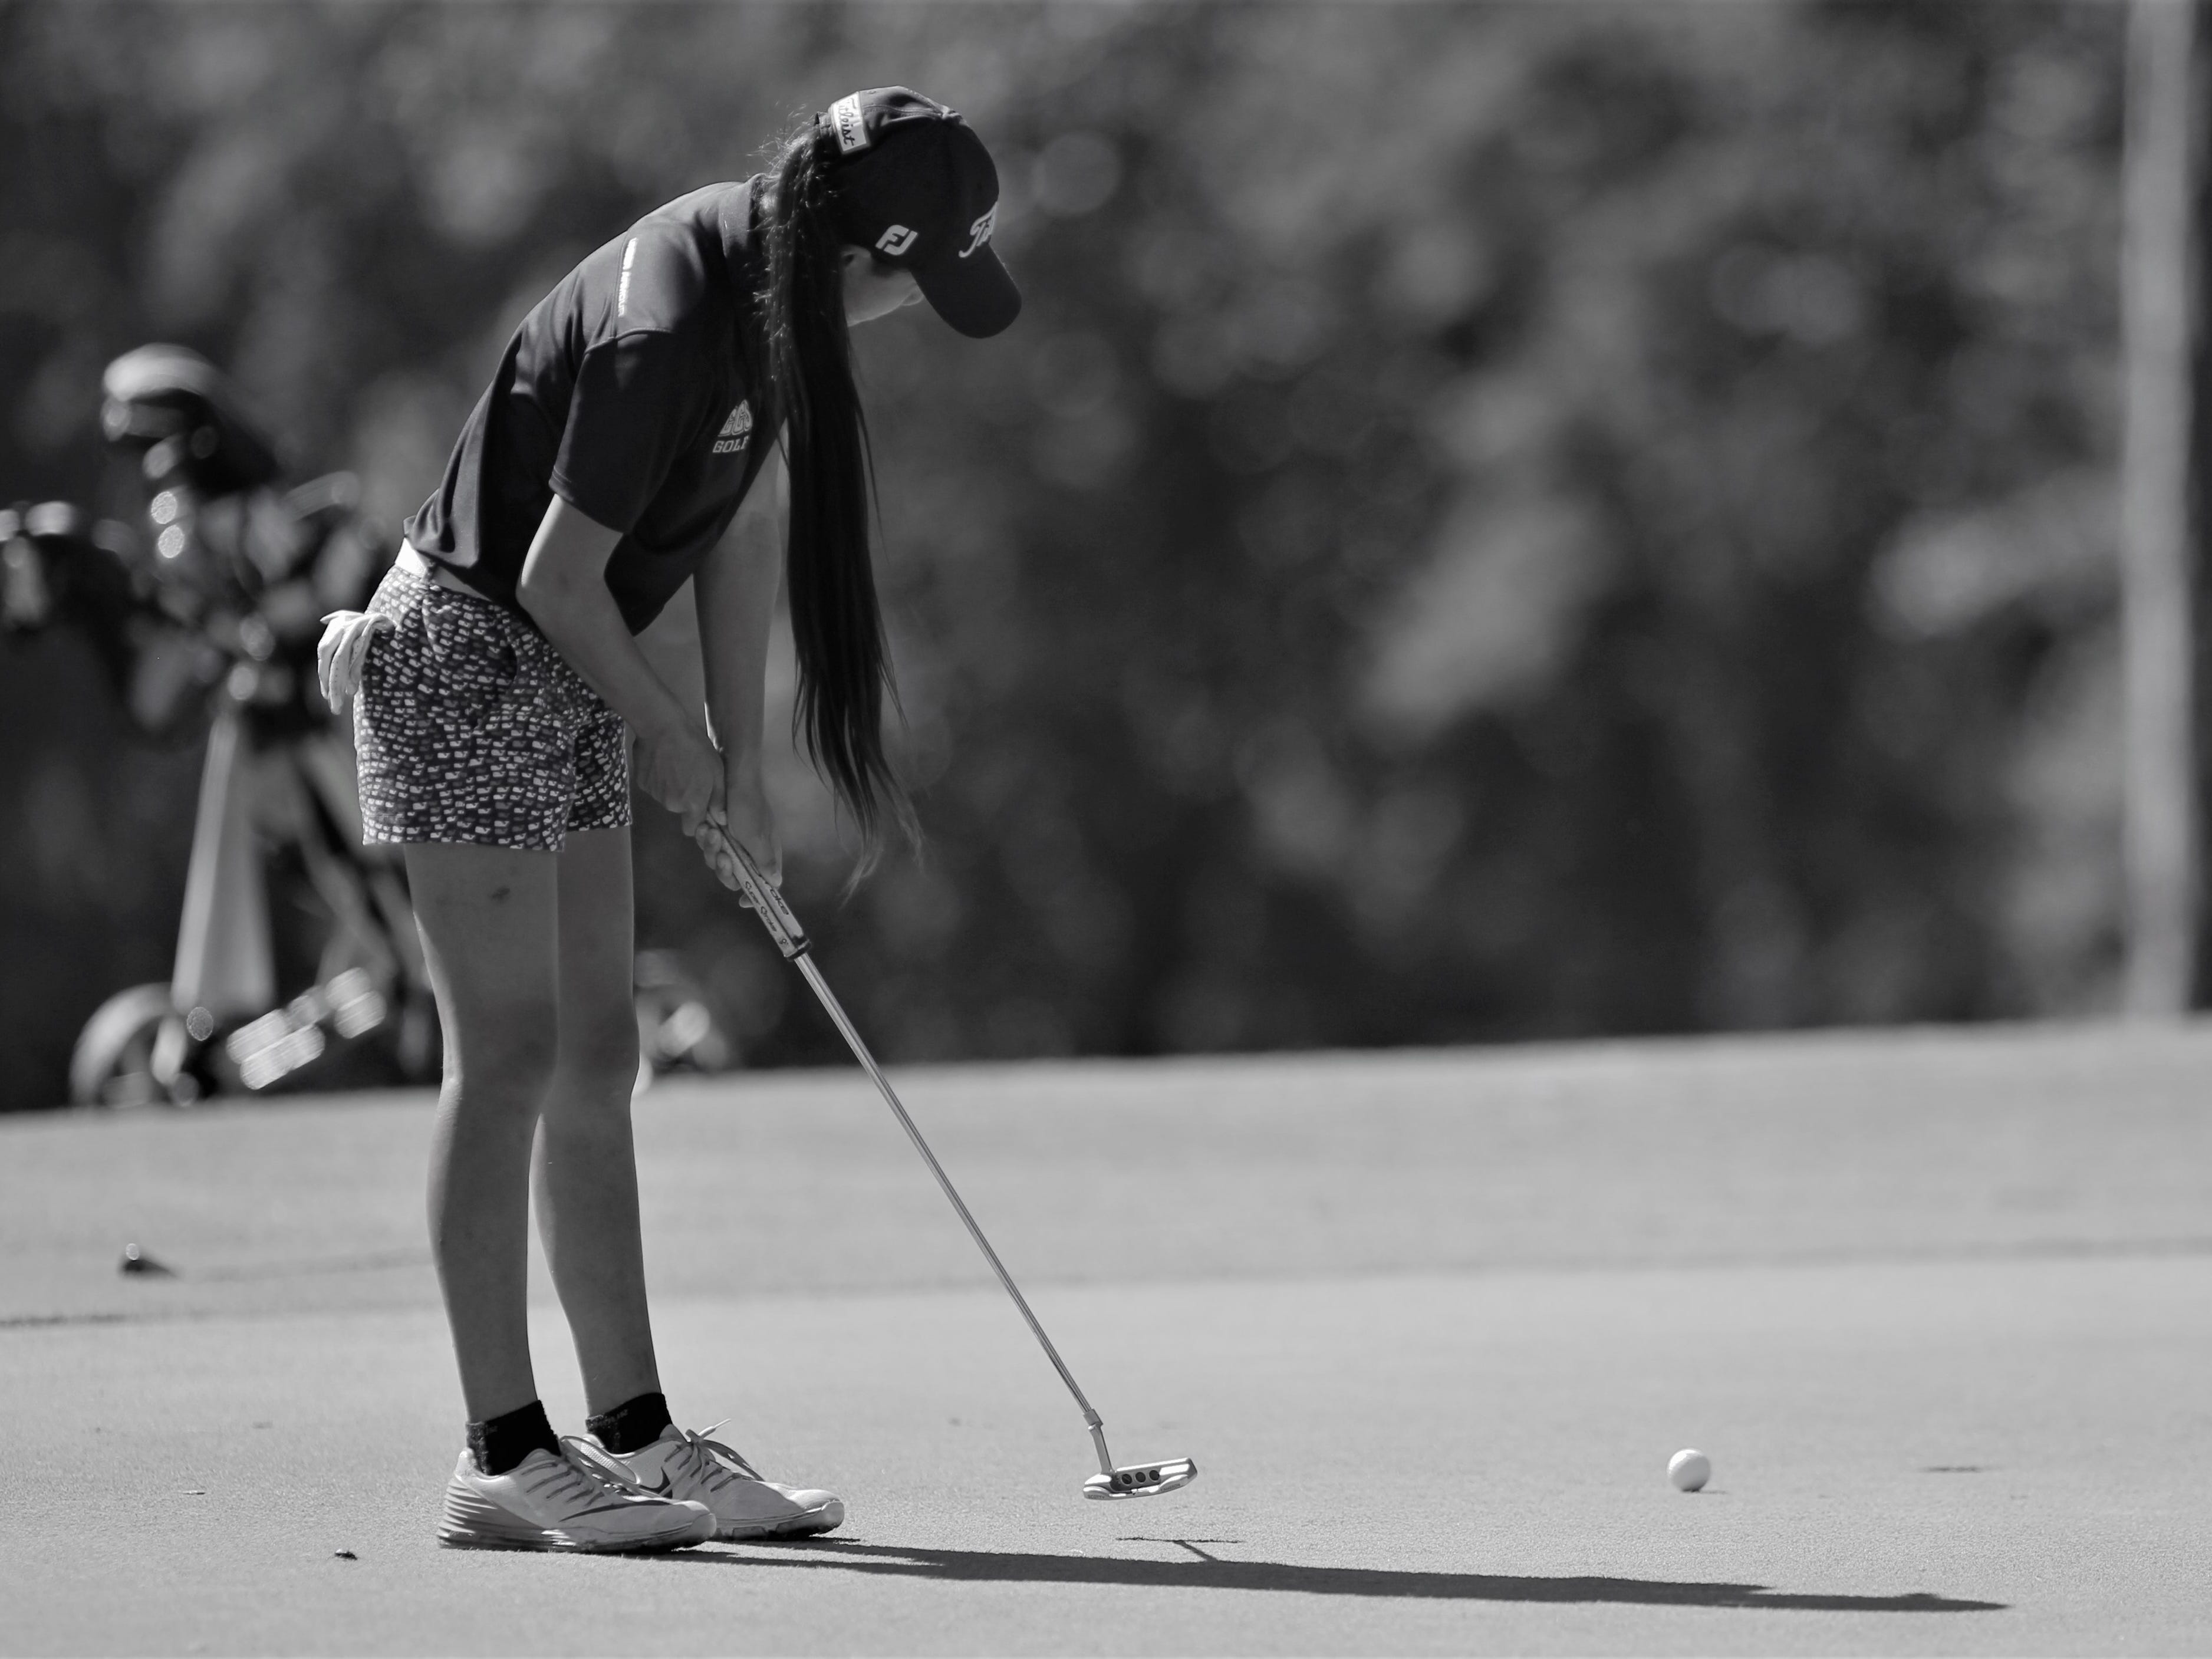 Community Christian eighth-grader Tynley Cotton putts during the girls golf Panhandle Invitational at Killearn Country Club, Oct. 4, 2018.